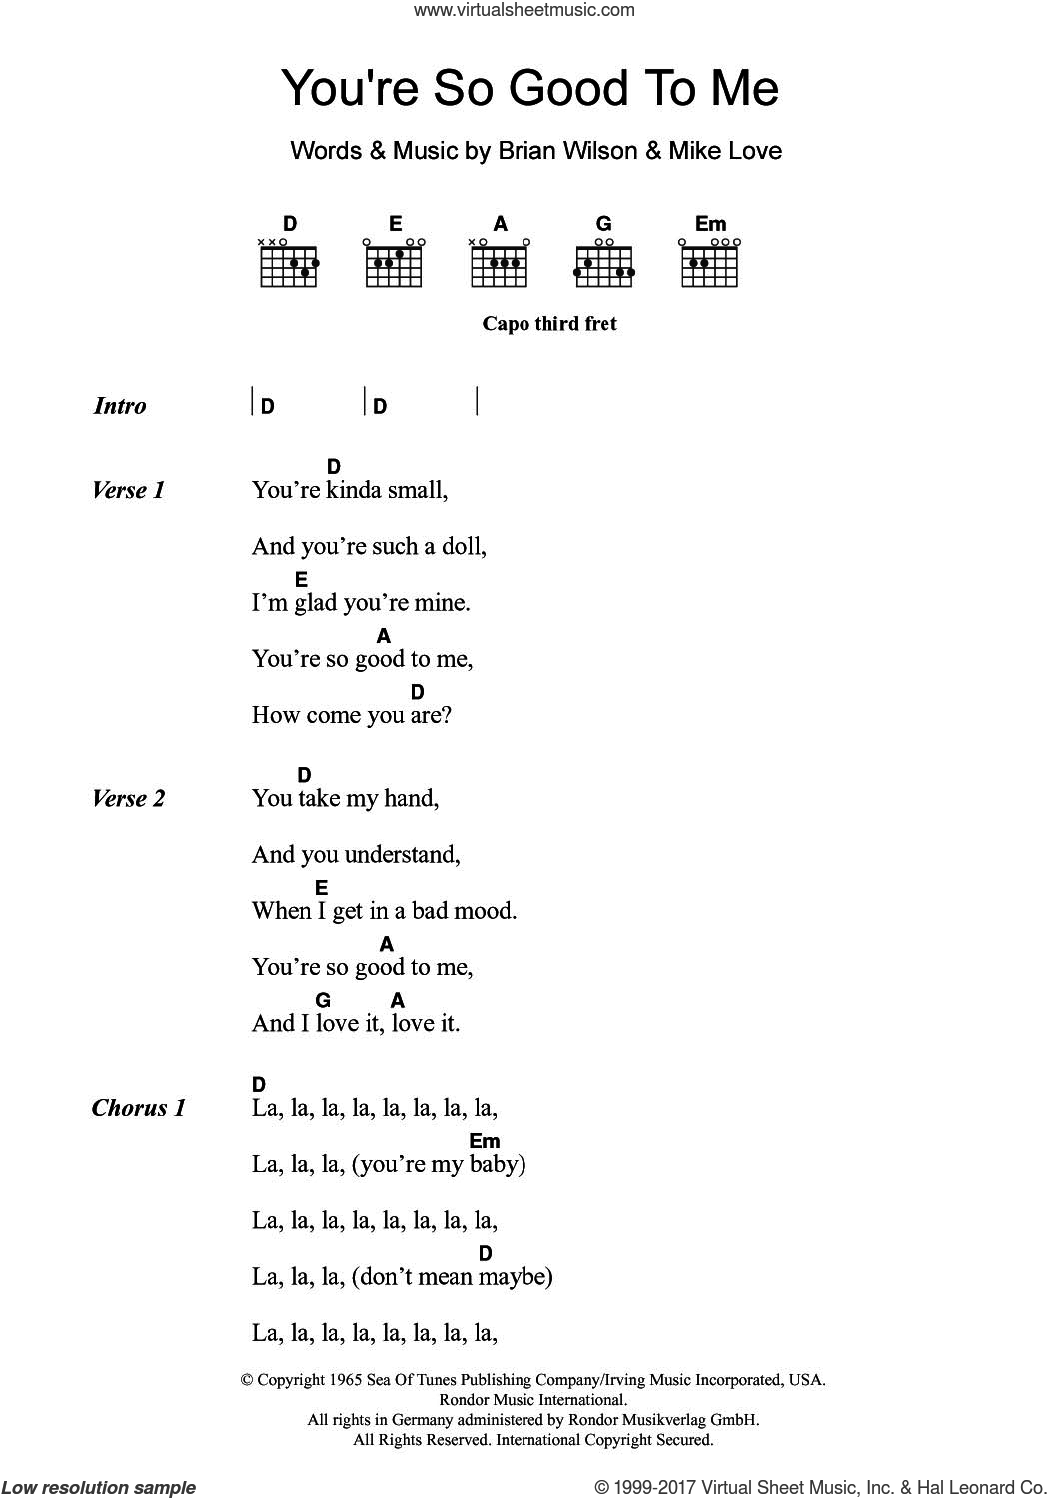 You're So Good To Me sheet music for guitar (chords) by The Beach Boys, Brian Wilson and Mike Love, intermediate skill level